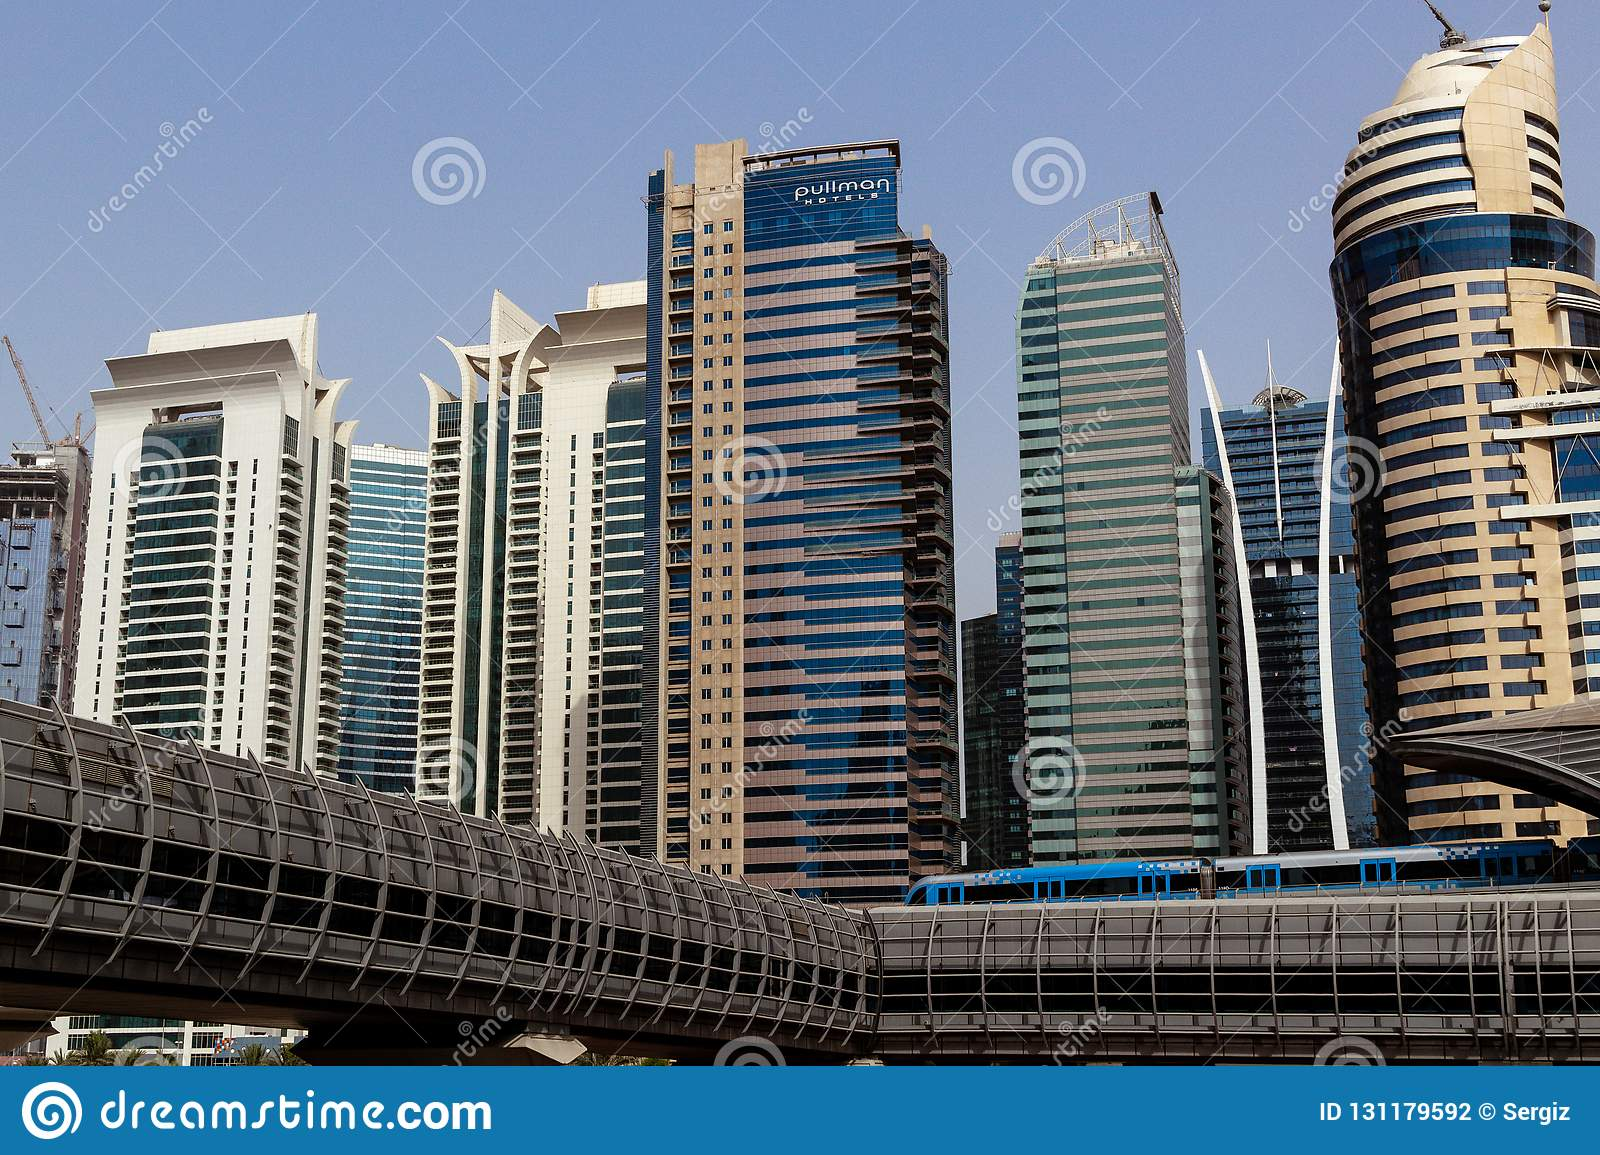 Dubai downtown skyscrapers, highway and metro.